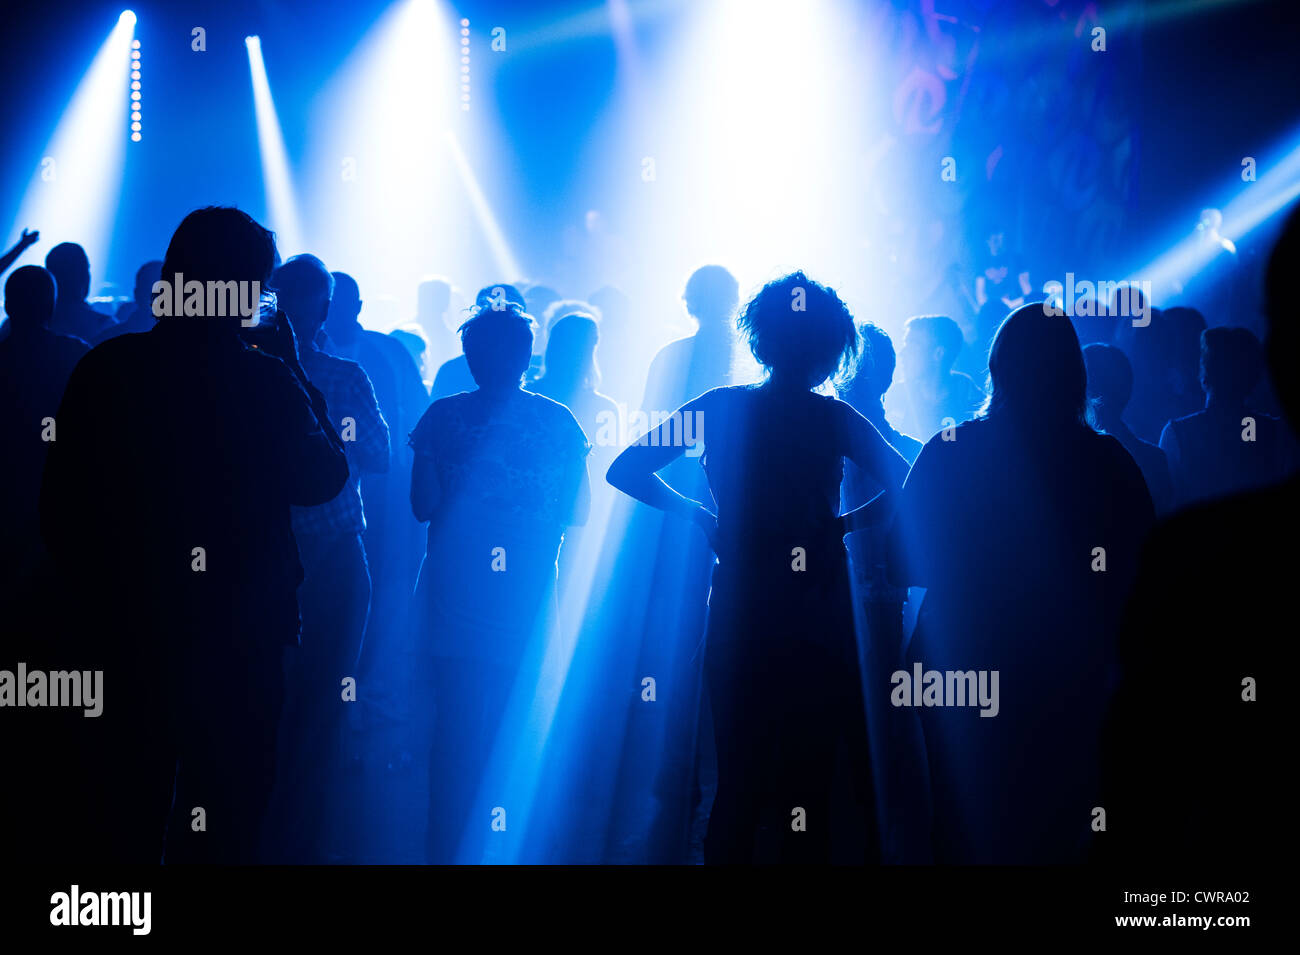 Young people silhouetted at concert gig music event nightclub club clubbers clubbing UK - Stock Image